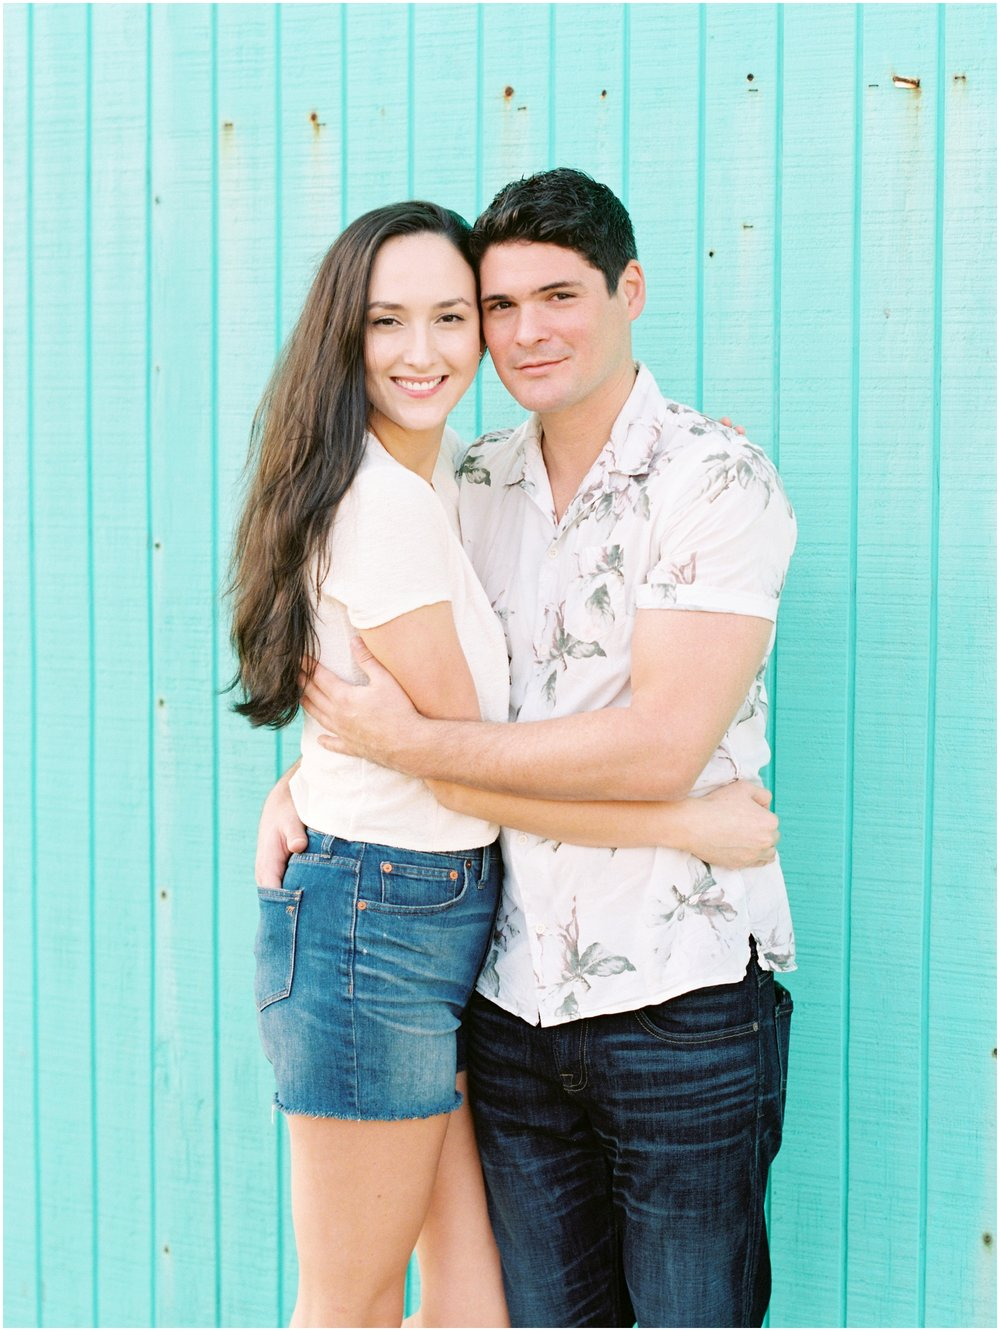 Lisa Silva Photography -Engagement Session at Neptune Beach, Florida- Jacksonville and North East Florida Fine Art Film Photographer_0028.jpg